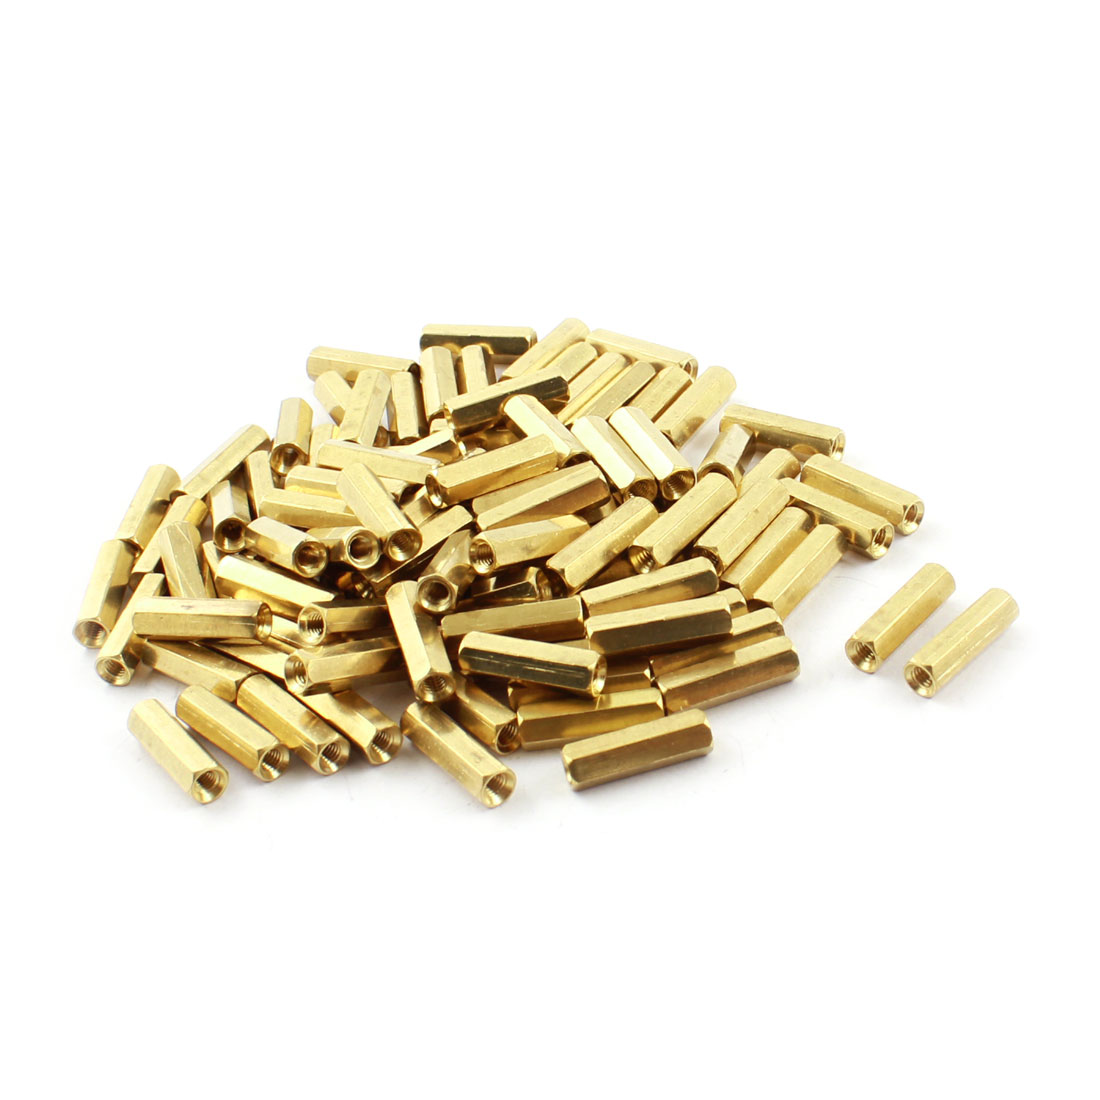 100 Pcs M3 x 16mm Female Thread Two Ended Gold Tone Brass Pillar PCB Standoff Hexagonal Spacer